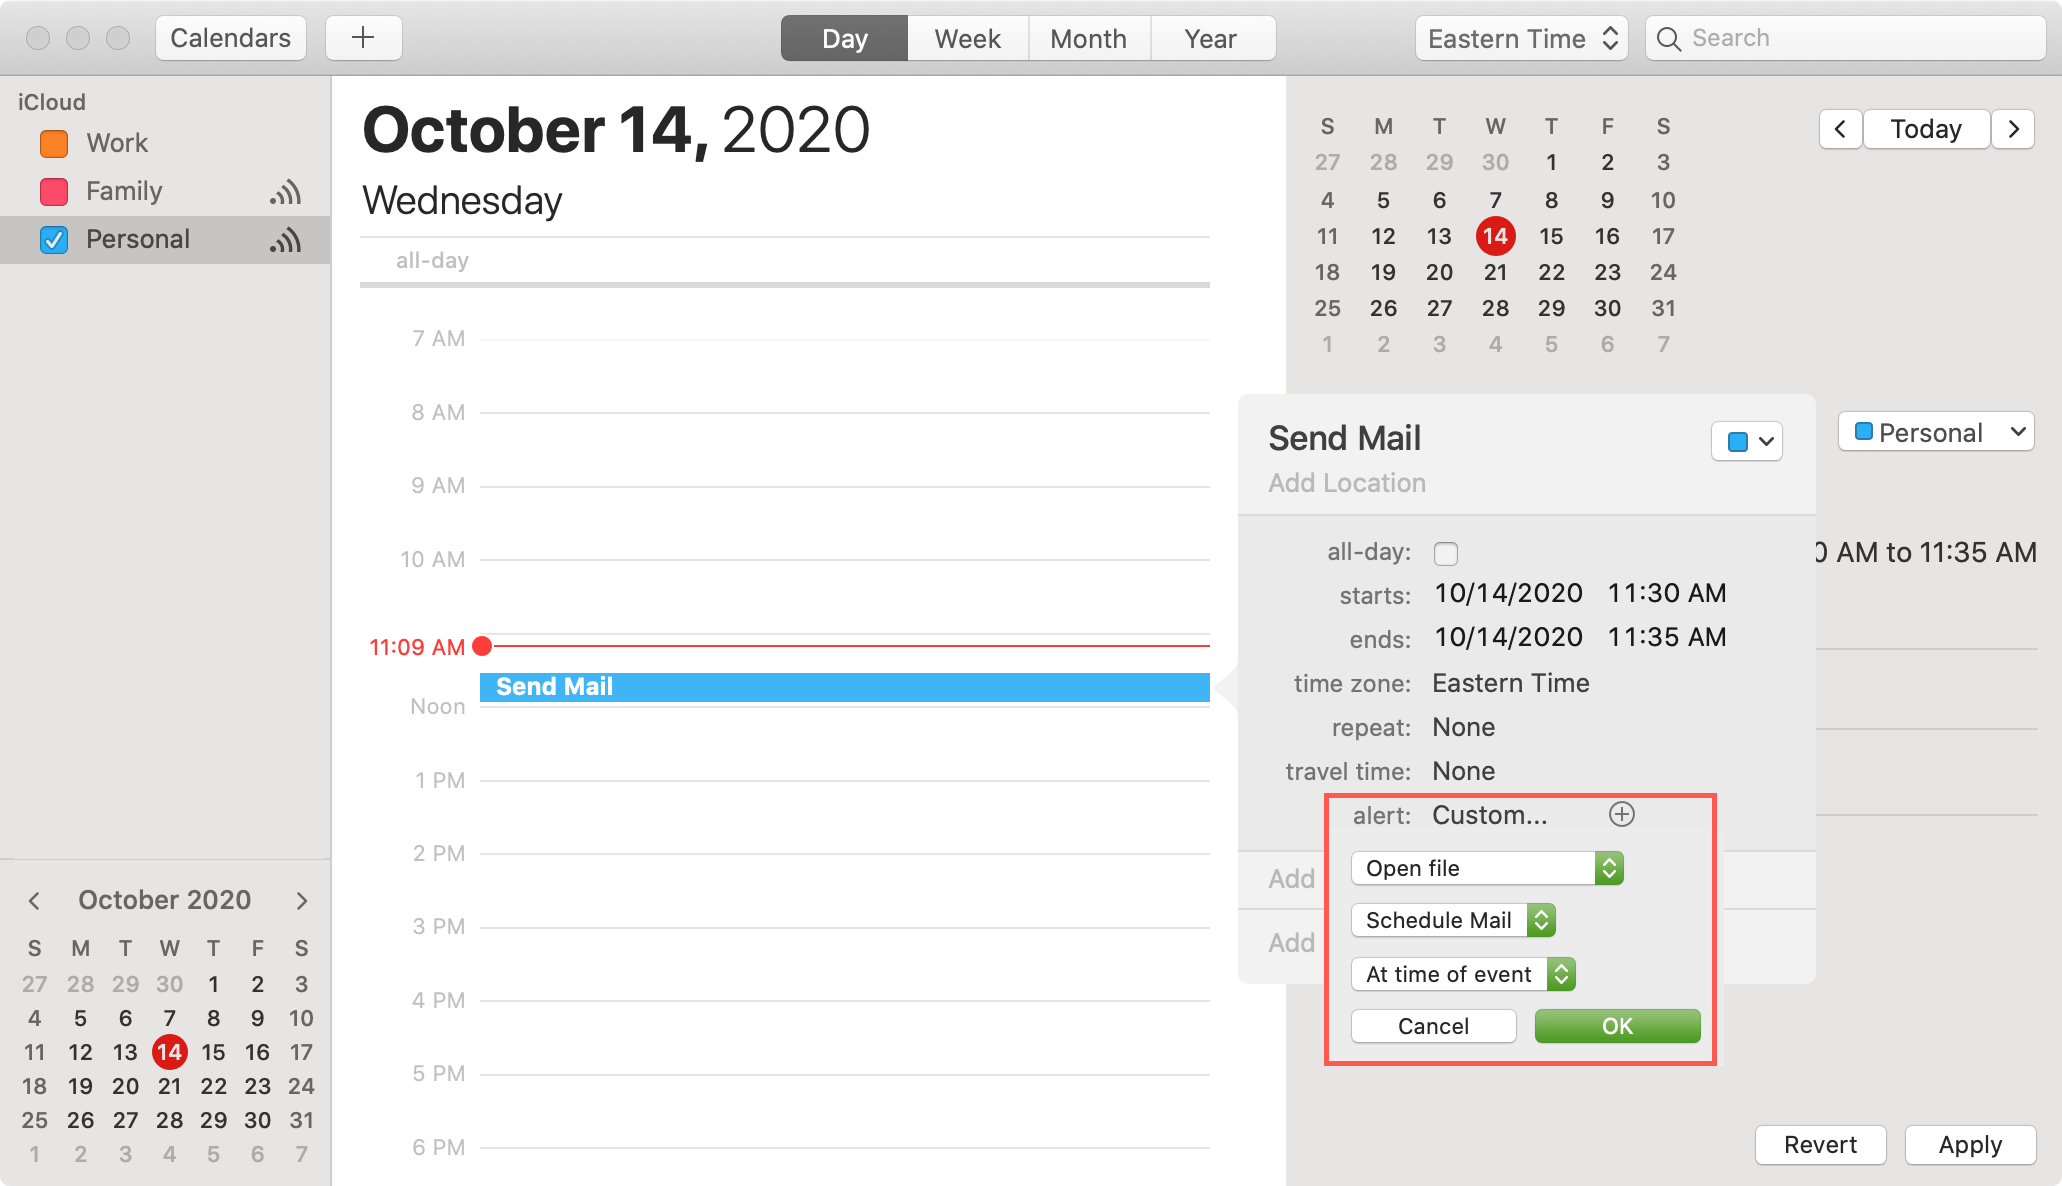 Calendar to Schedule Mail Using the Automator Application